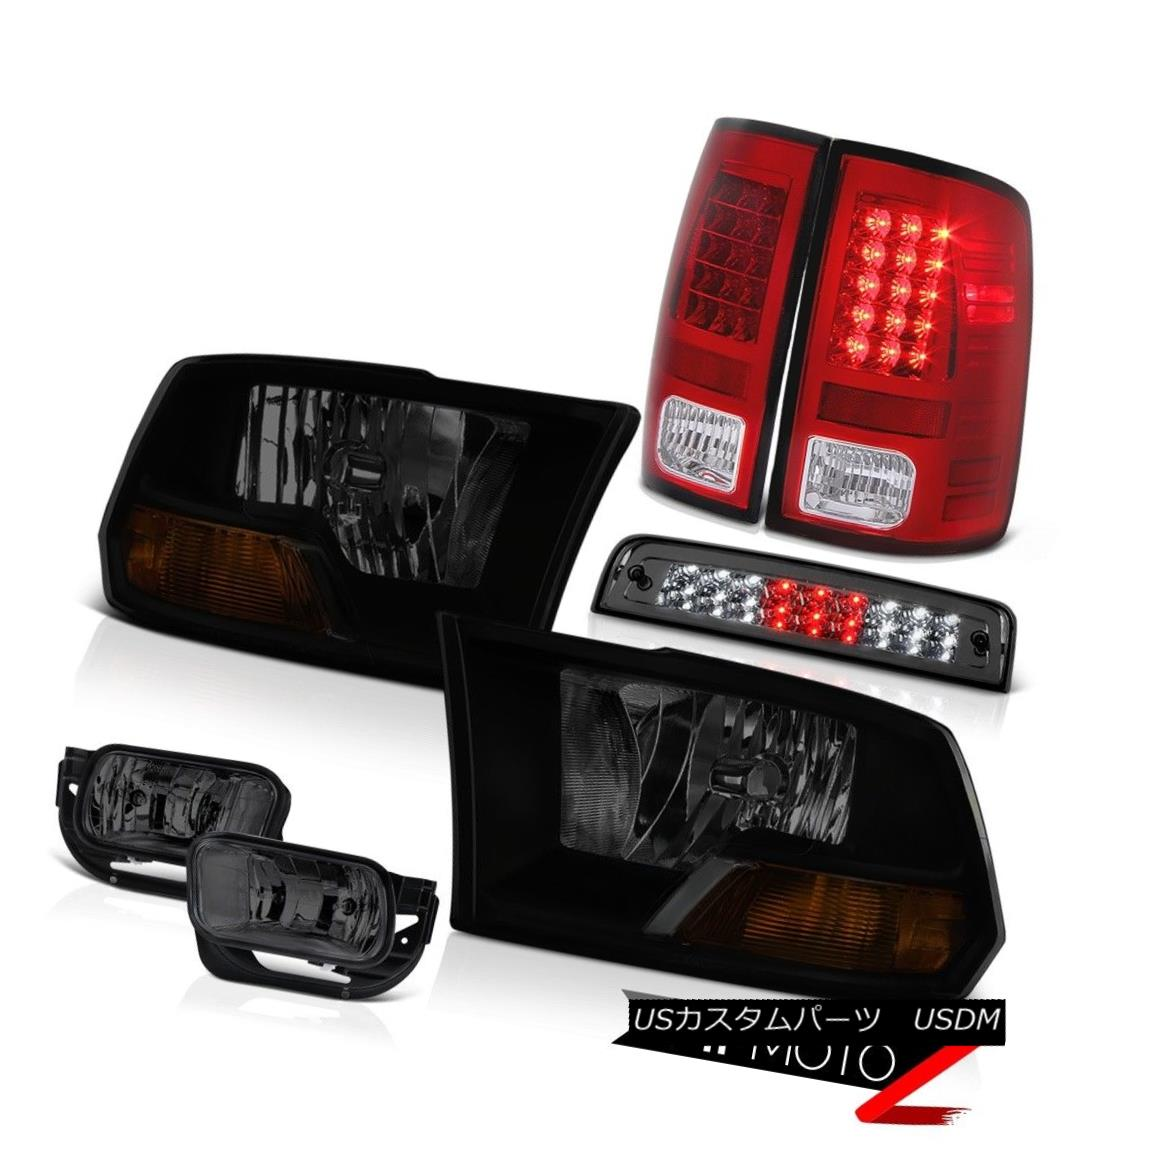 テールライト 09-13 Dodge Ram 1500 Laramie Foglights Third Brake Light Taillamps Headlights 09-13 Dodge Ram 1500 Laramie Foglights第3ブレーキライトタイヤランプヘッドライト